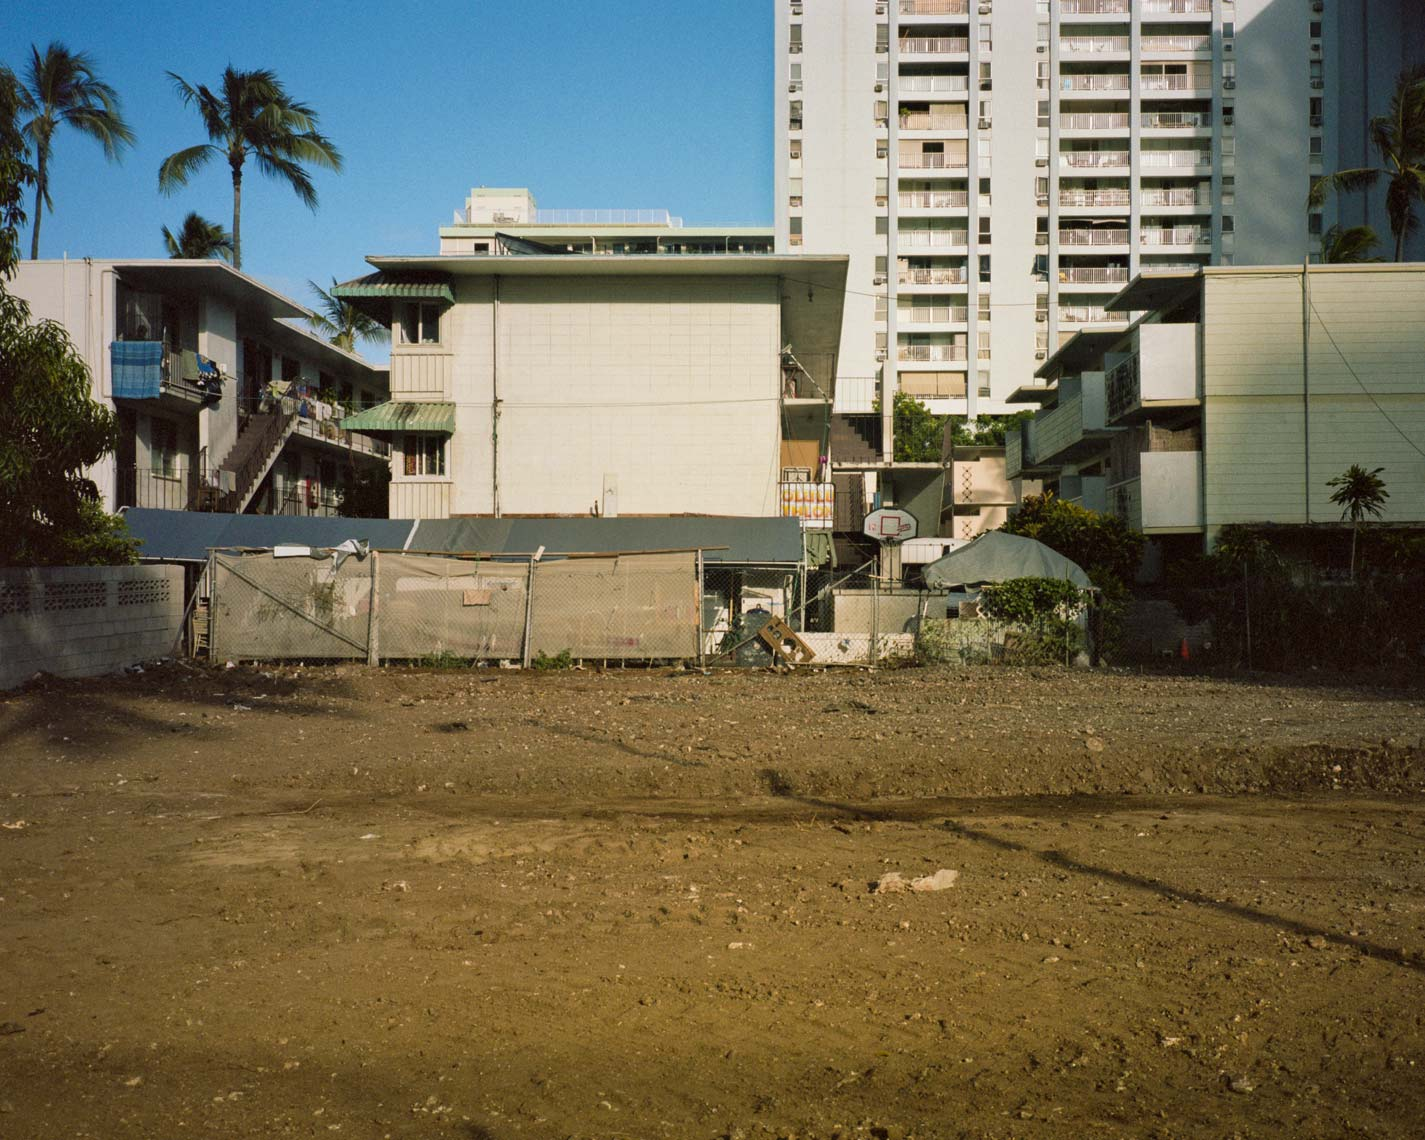 Honolulu_Buildings.jpg